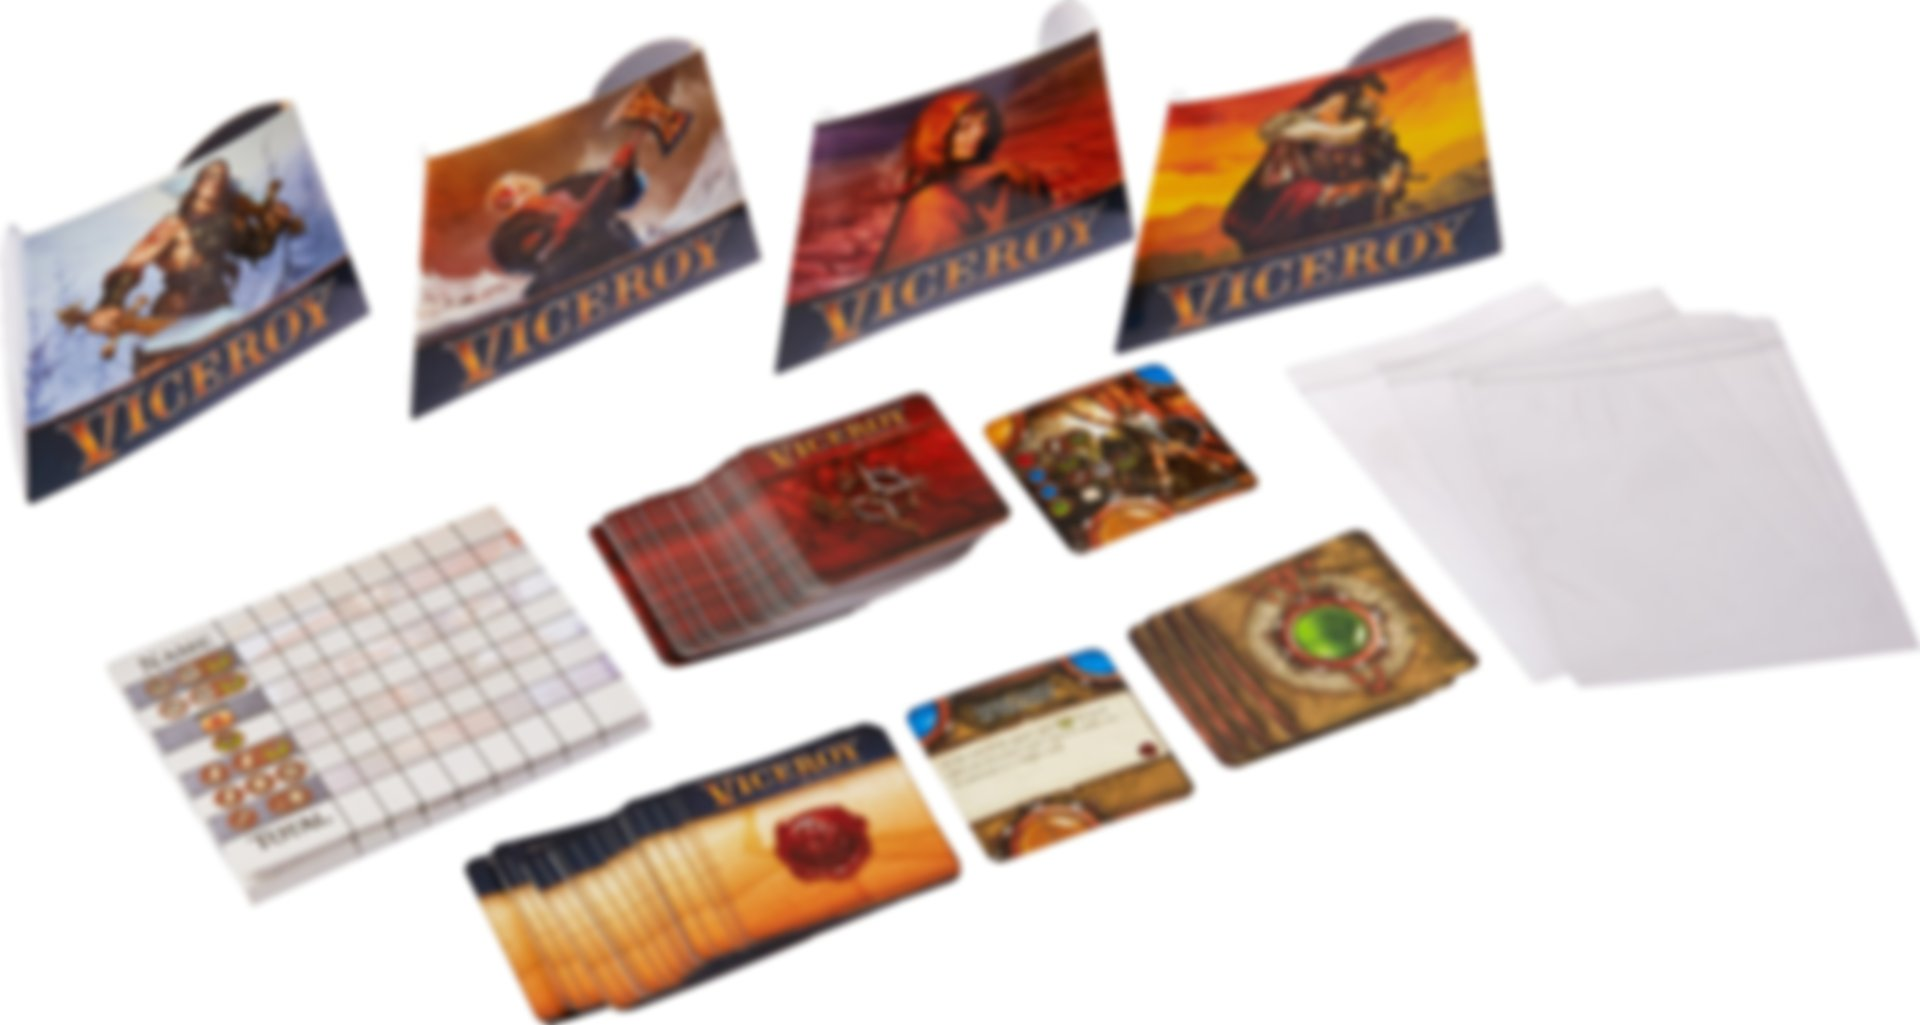 Viceroy components